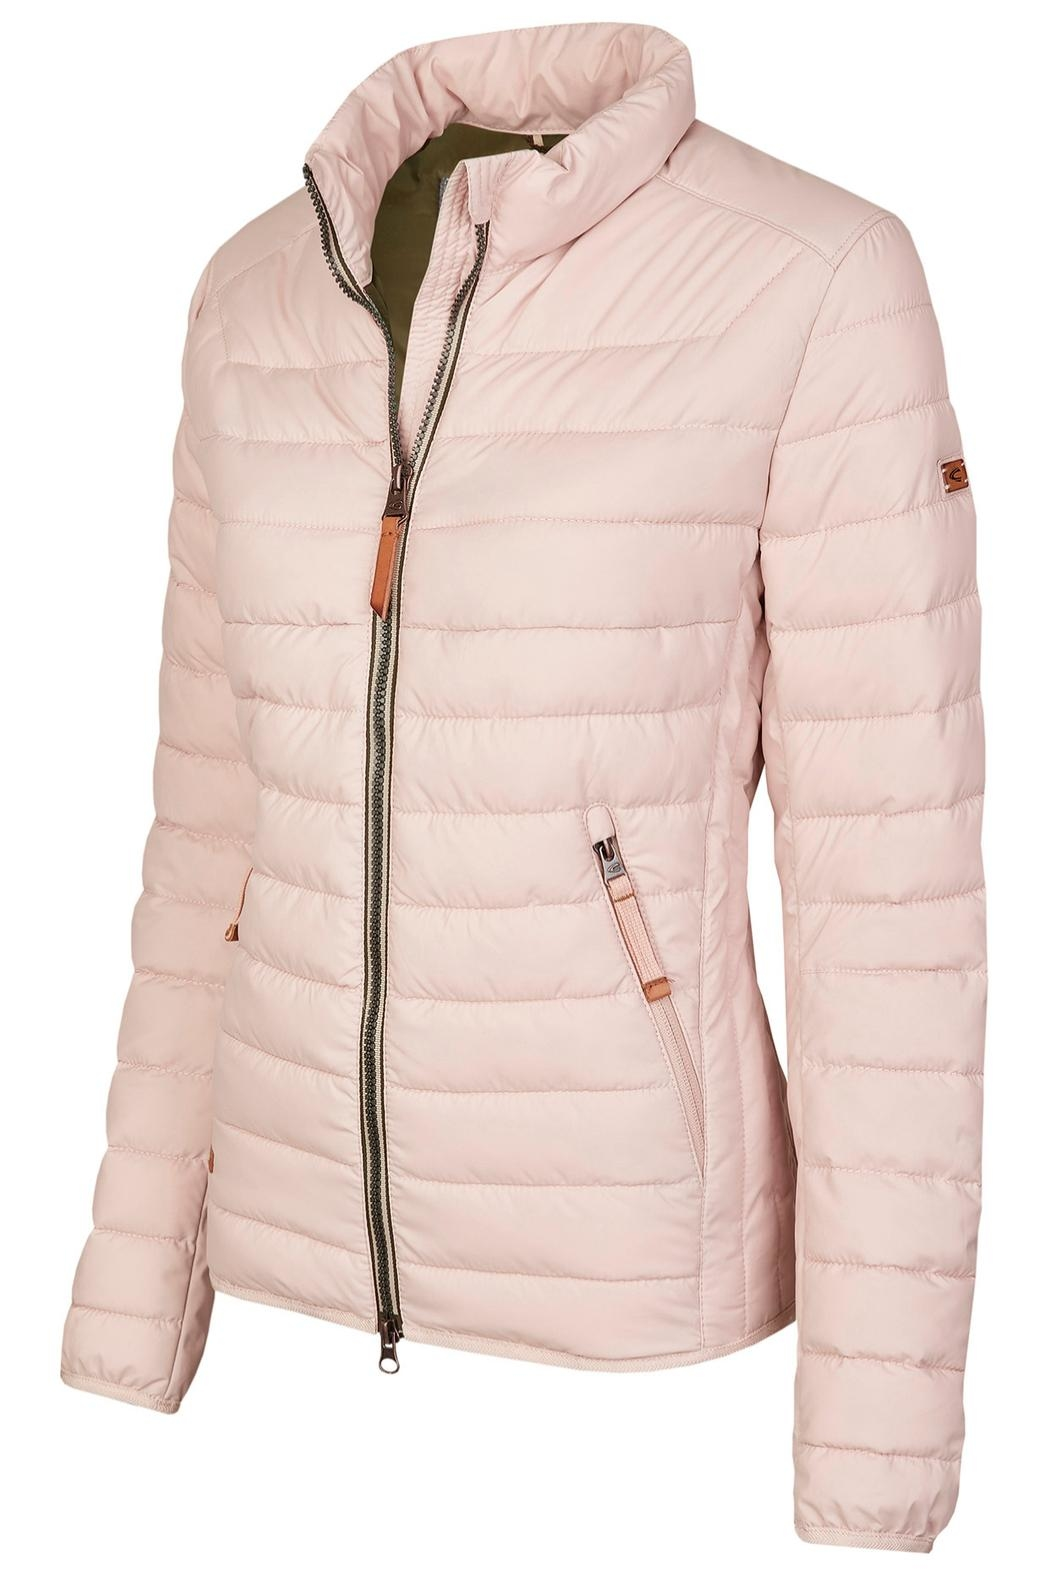 Camel Active Outdoor Jacket - Front Full Image